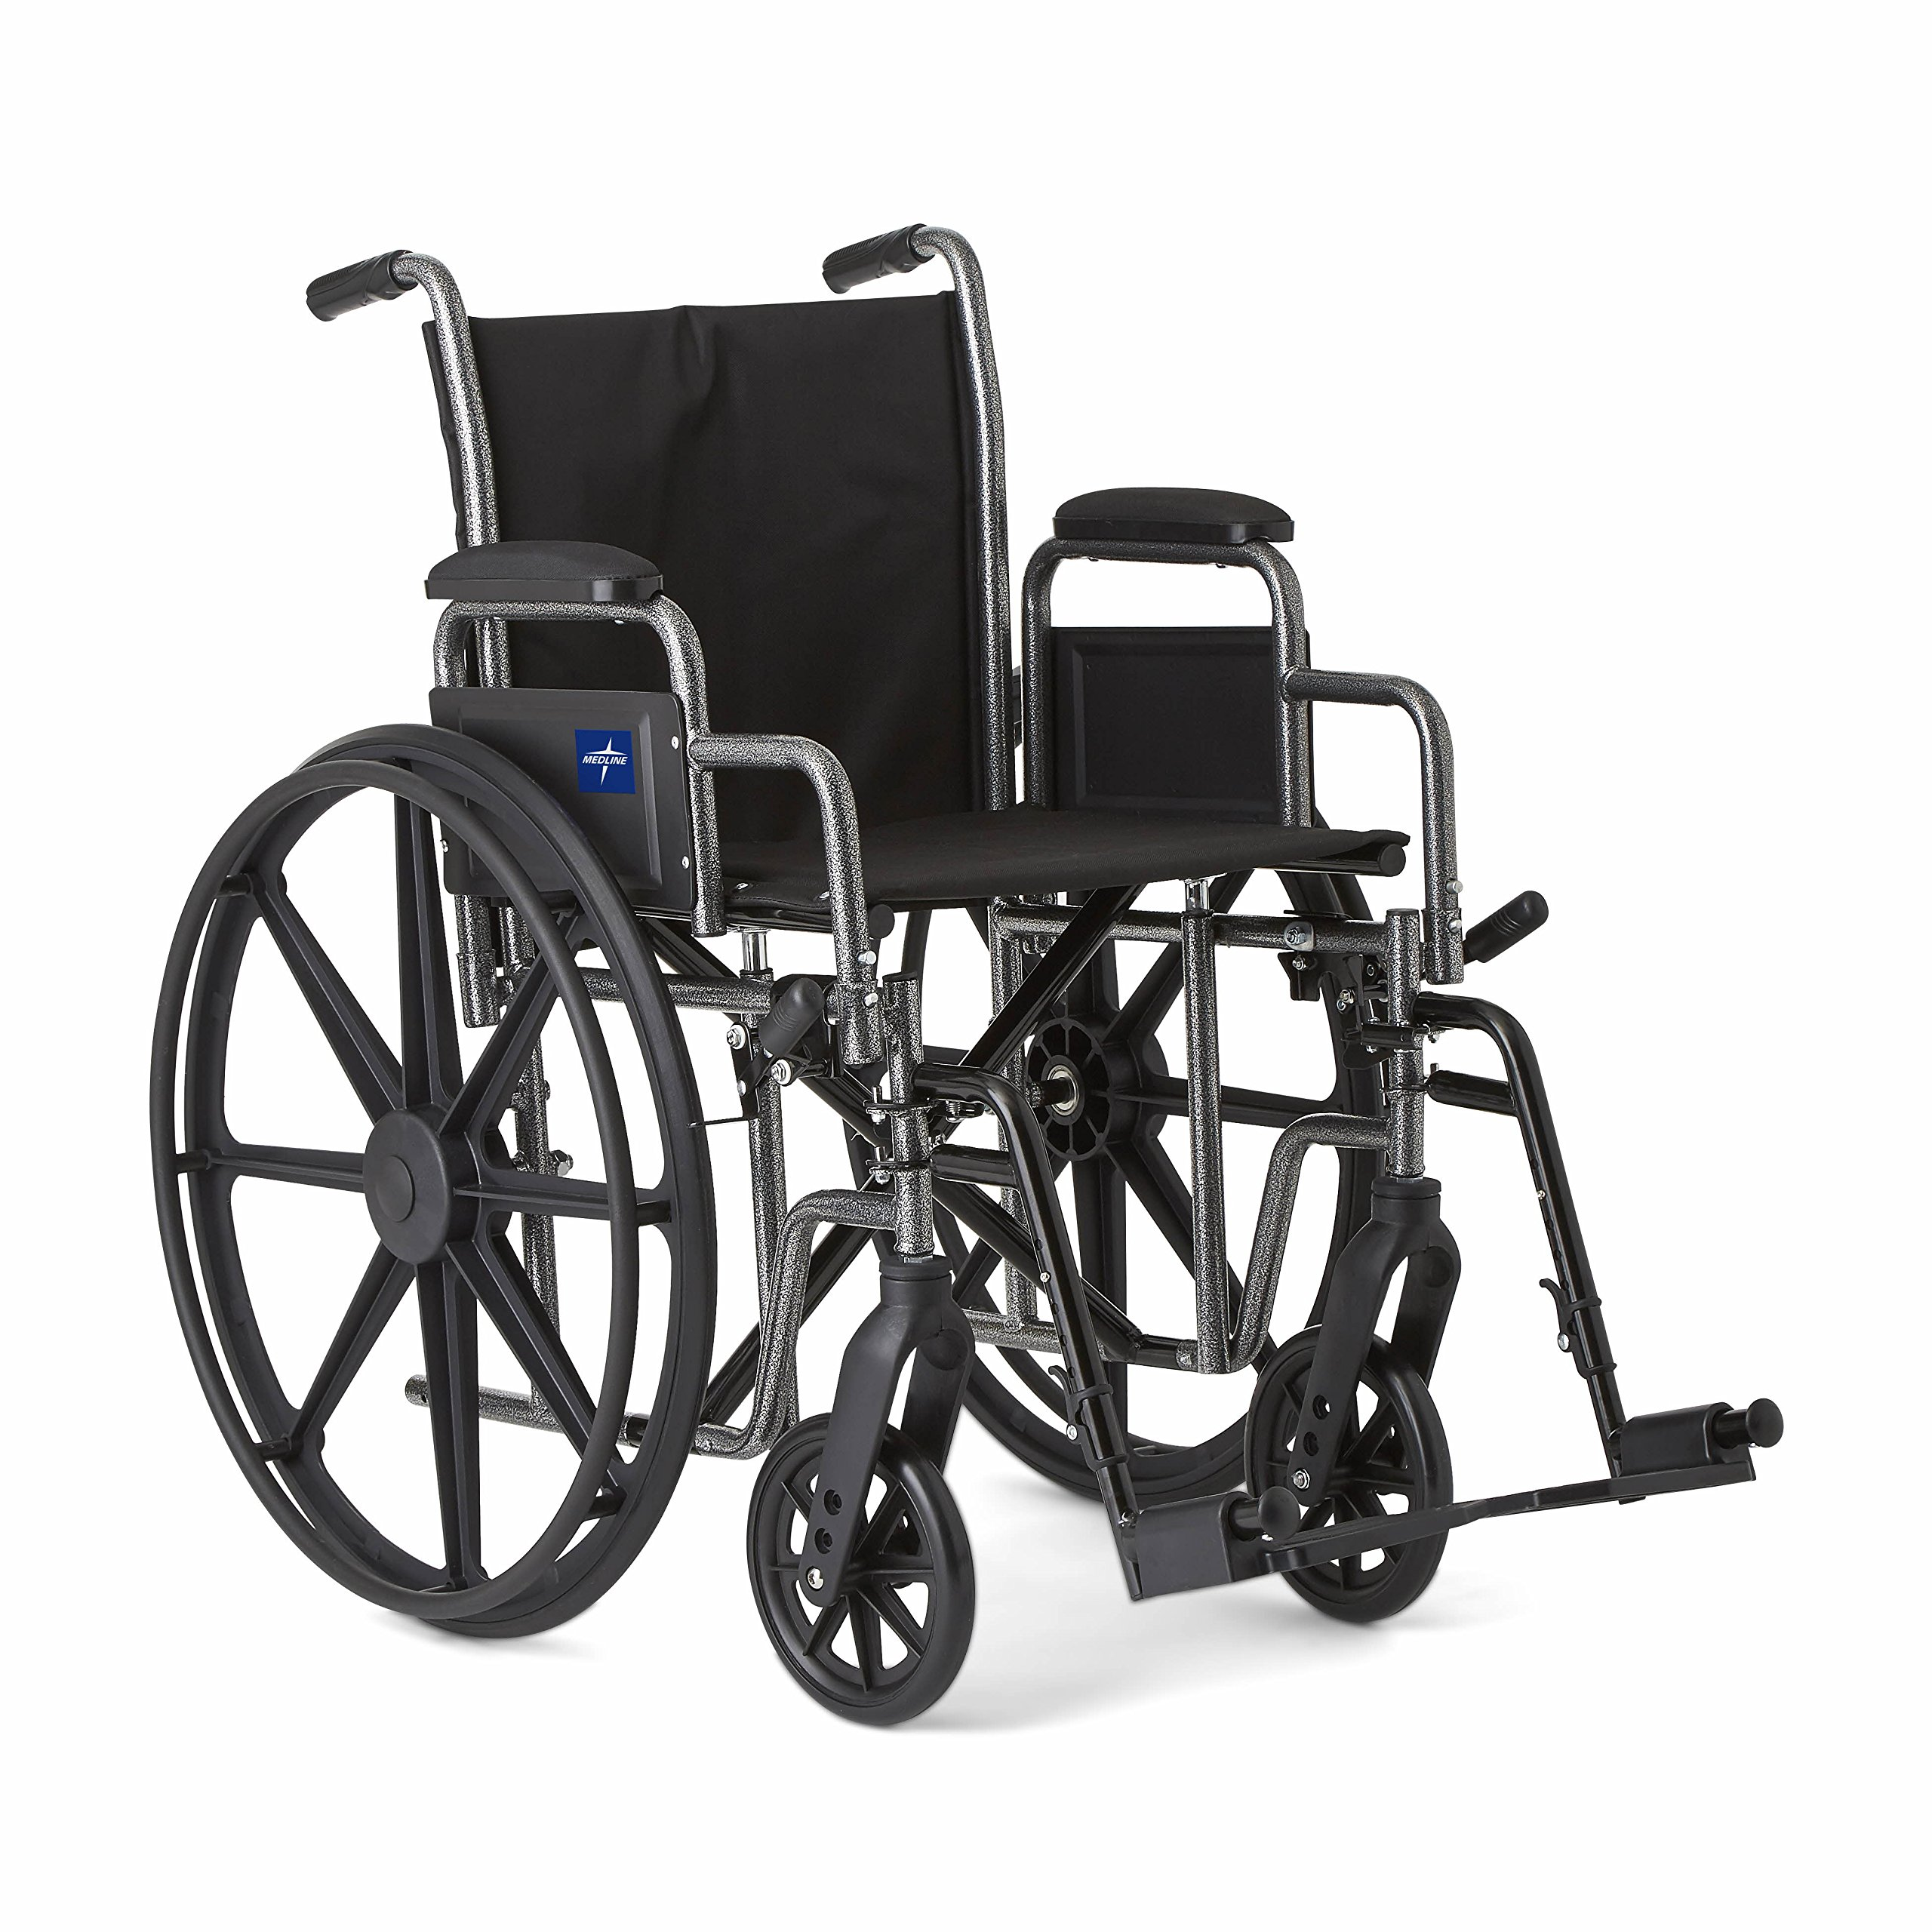 Medline Strong and Sturdy Wheelchair with Desk-Length Arms and Swing-Away Leg Rests for Easy Transfers, 20'' Seat by Medline